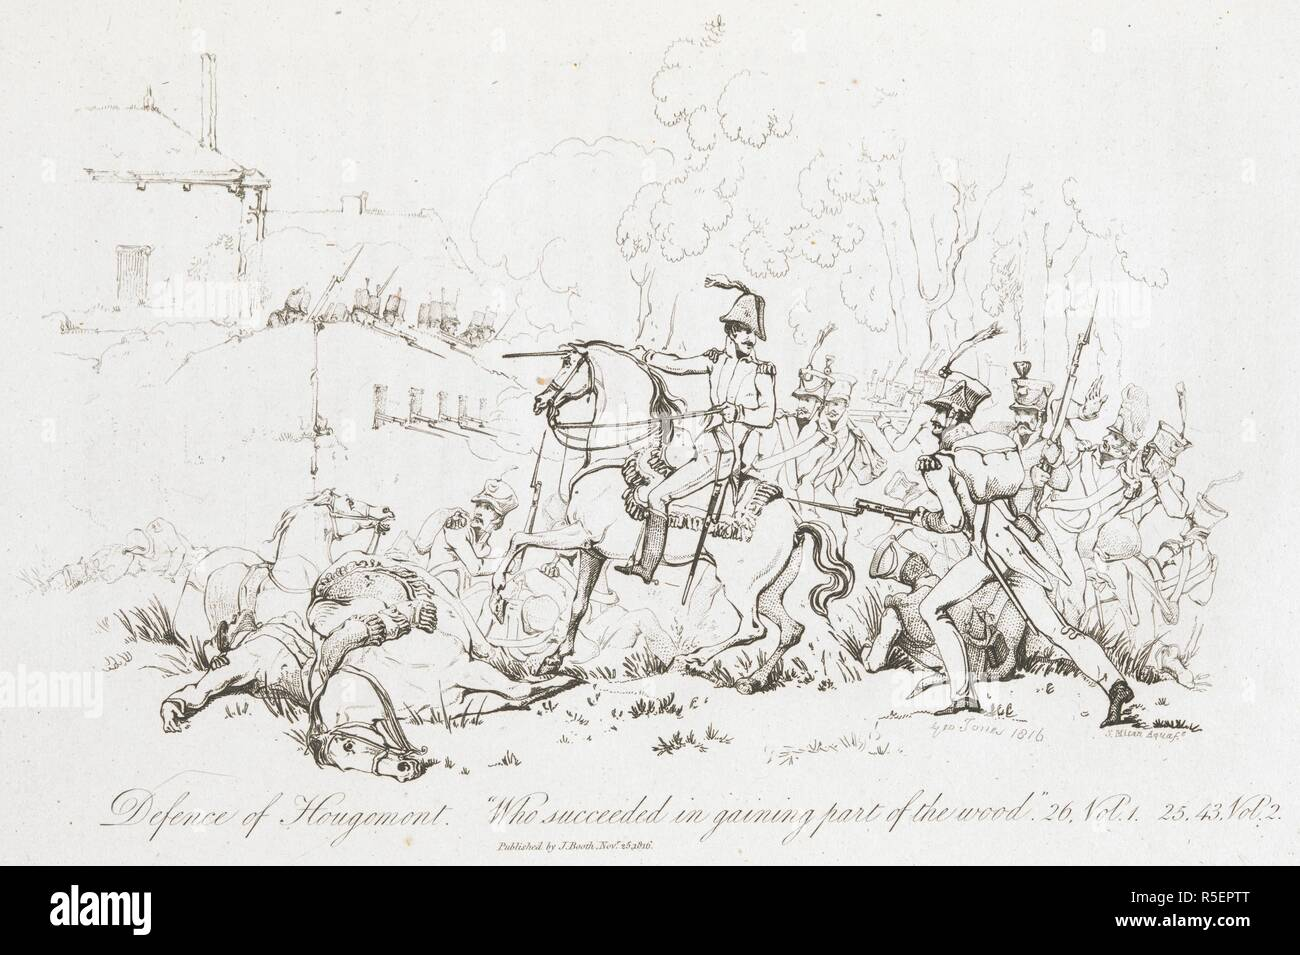 Defence of Hougomont. 'Who succeeded in gaining great part of the wood'. The Battle of Waterloo, also of Ligny and Quatre-Bras described by ... a near observer ... [A narrative by C. A. Eaton, with a sketch by J. Waldie... from sketches by Captain G. Jones. 2 vol. John Booth; T. Egerton: London, 1817. Source: G.5651 part 1, plate 12 opposite page 26. Author: Eaton, Charlotte Anne. Jones, Captain George. - Stock Image